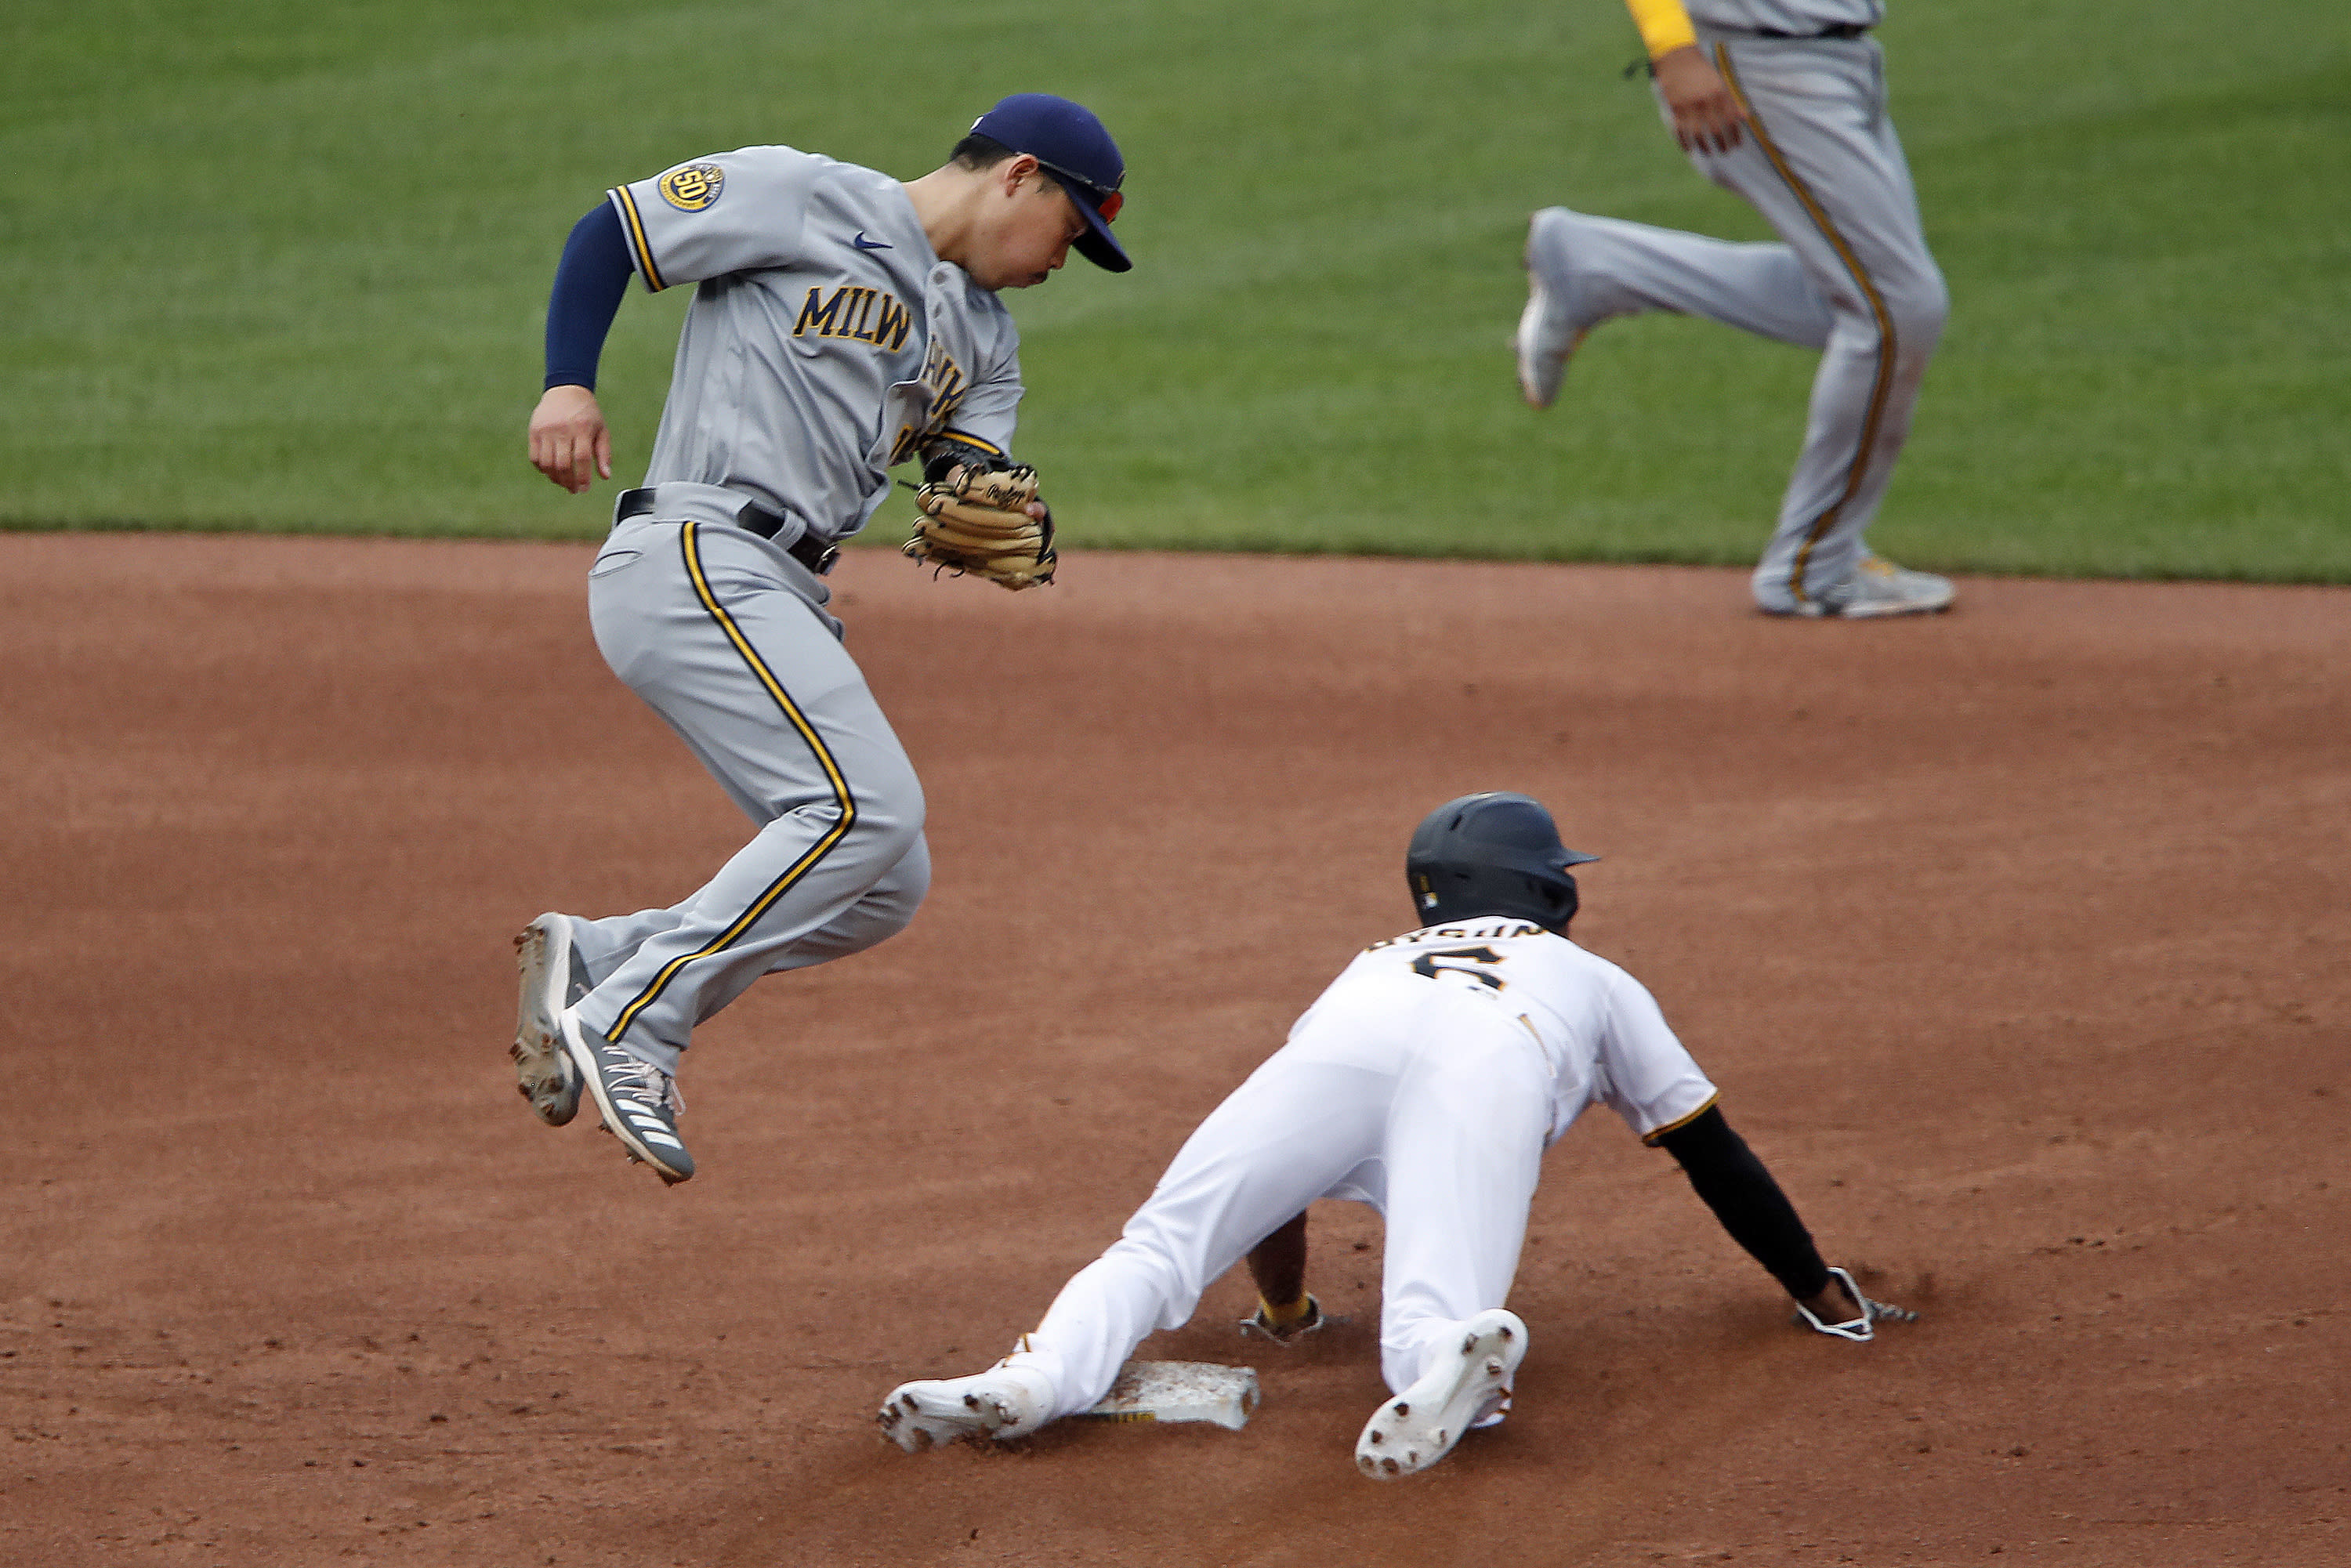 Pittsburgh Pirates' Jarrod Dyson (6) successfully steals second as the high throw from Milwaukee Brewers catcher Omar Narvaez gets past second baseman Keston Hiura, left, during the second inning of a baseball game in Pittsburgh, Sunday, Aug. 23, 2020. Dyson advanced to third on the throwing error. (AP Photo/Gene J. Puskar)